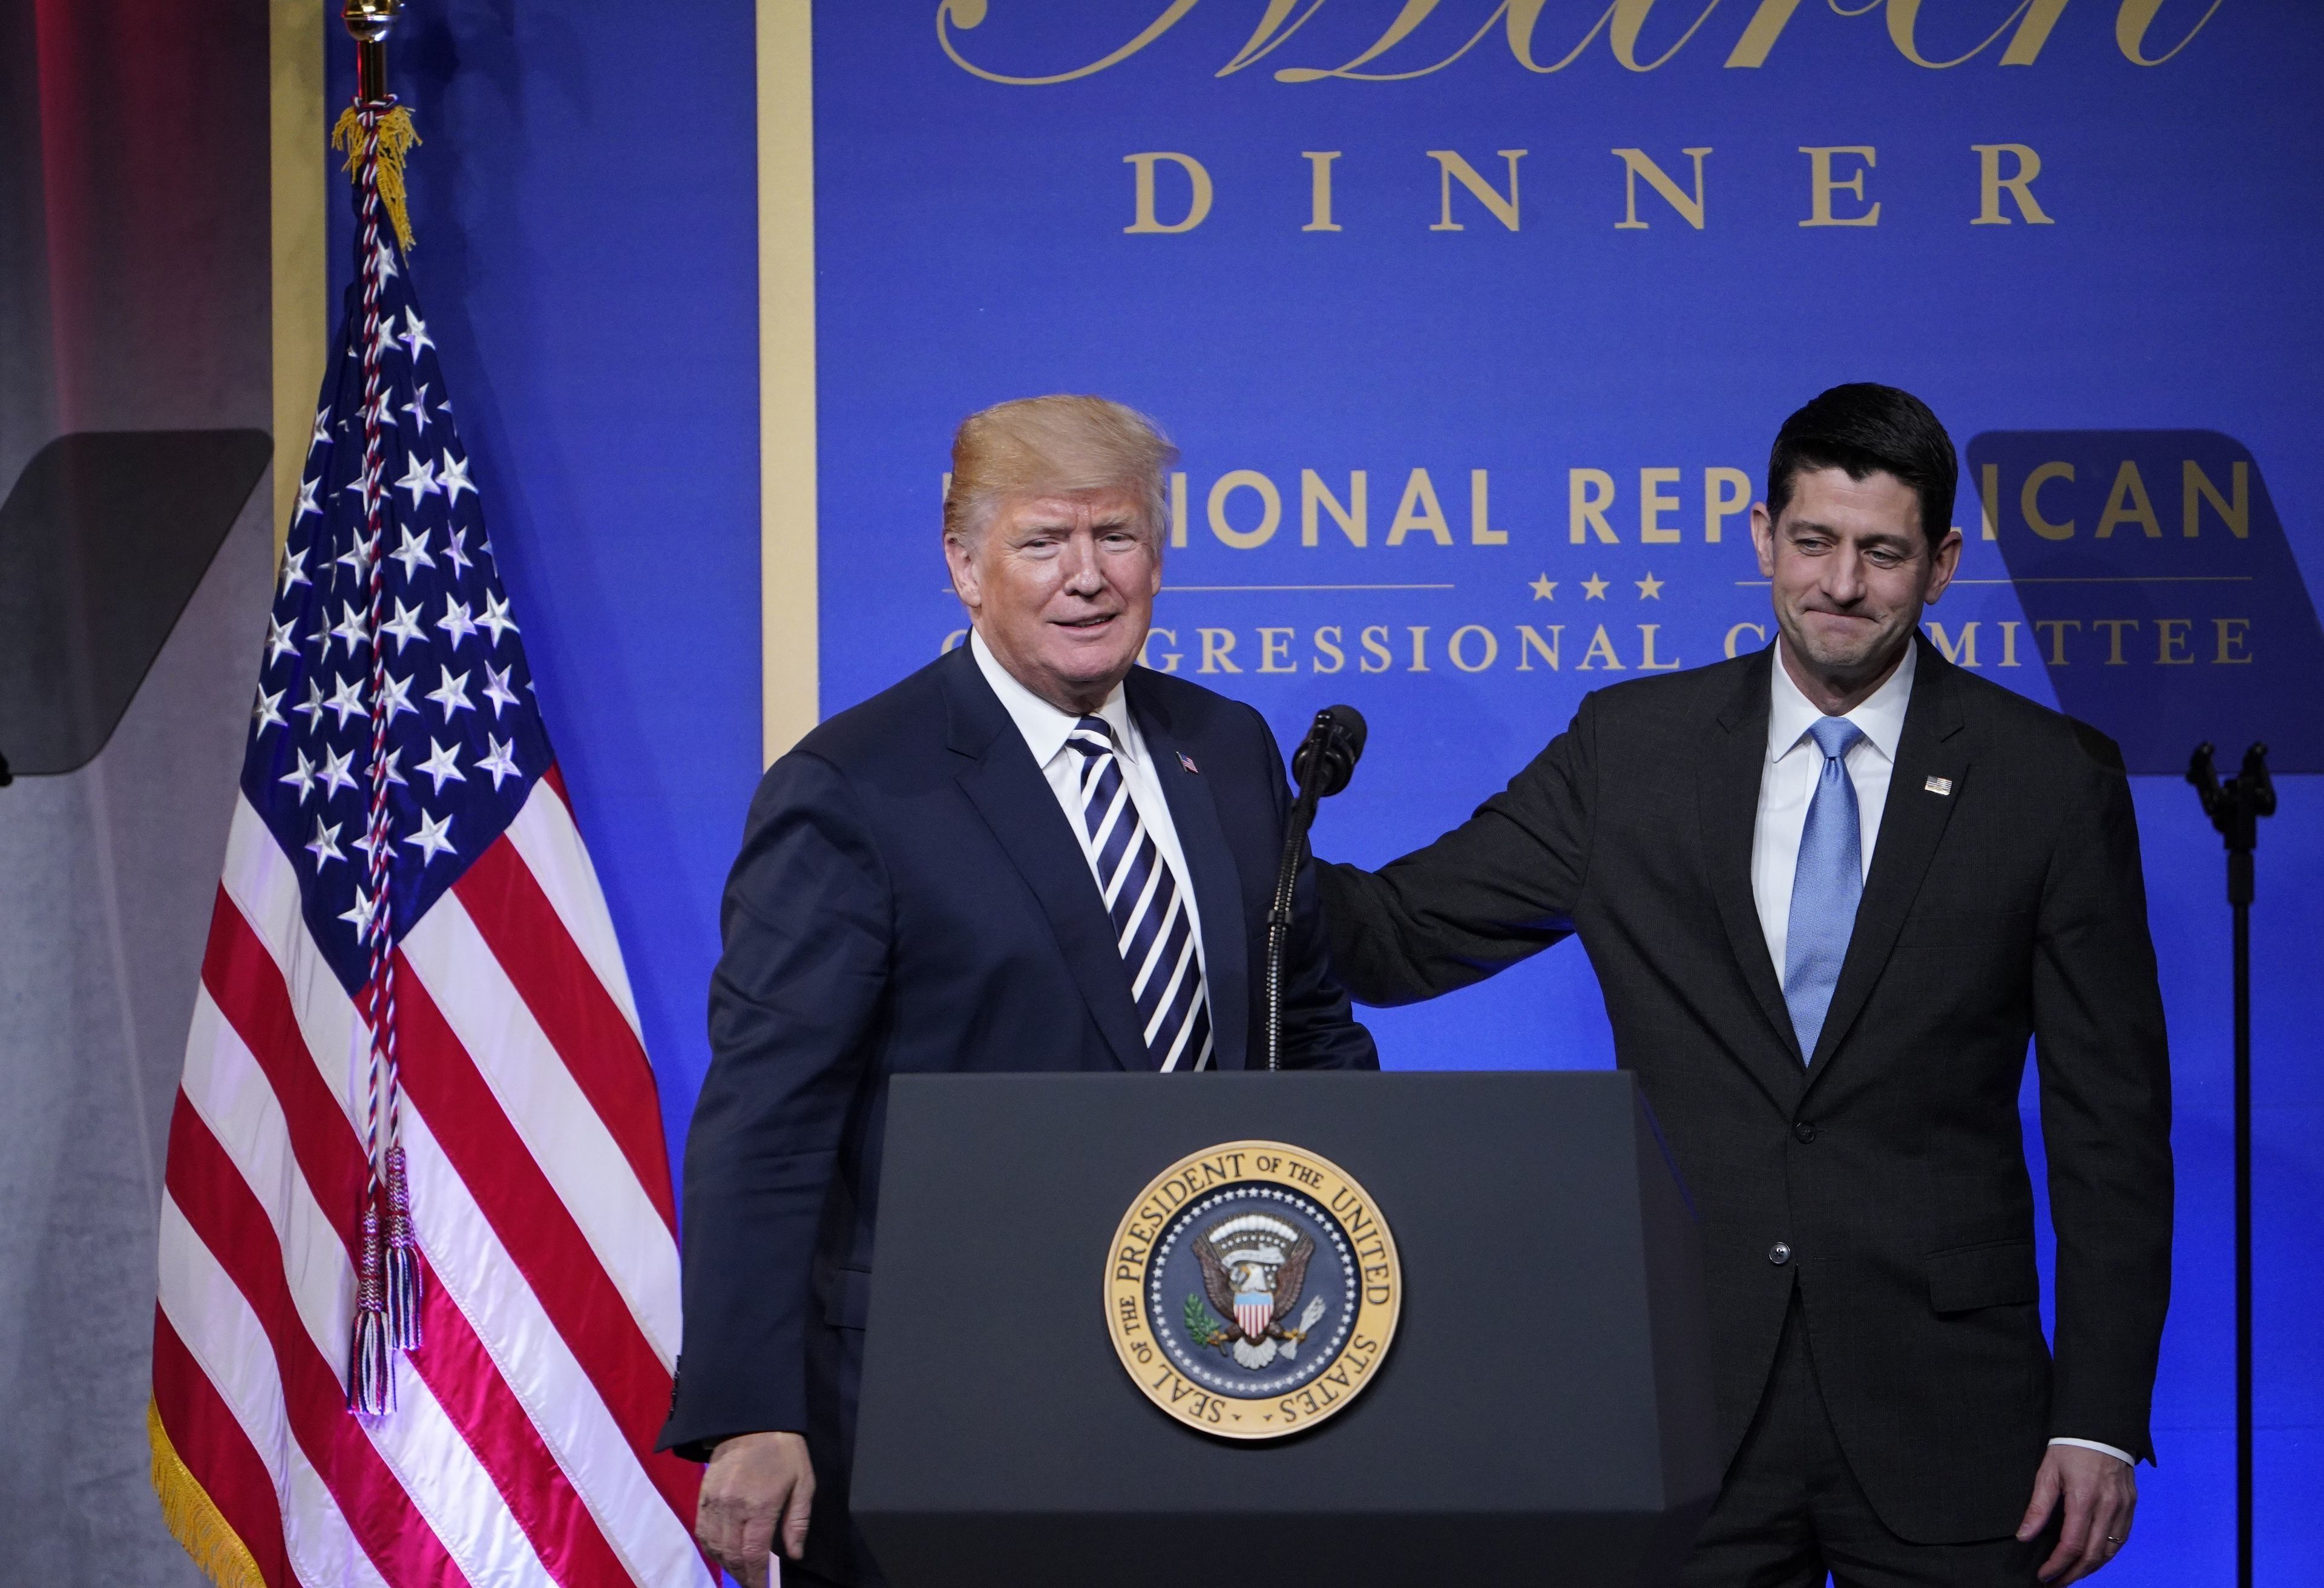 US President Donald Trump greets US Speaker of the House Paul Ryan during the National Republican Congressional Committee March Dinner at the National Building Museum on March 20, 2018 in Washington, DC. / AFP PHOTO / MANDEL NGAN        (Photo credit should read MANDEL NGAN/AFP/Getty Images)